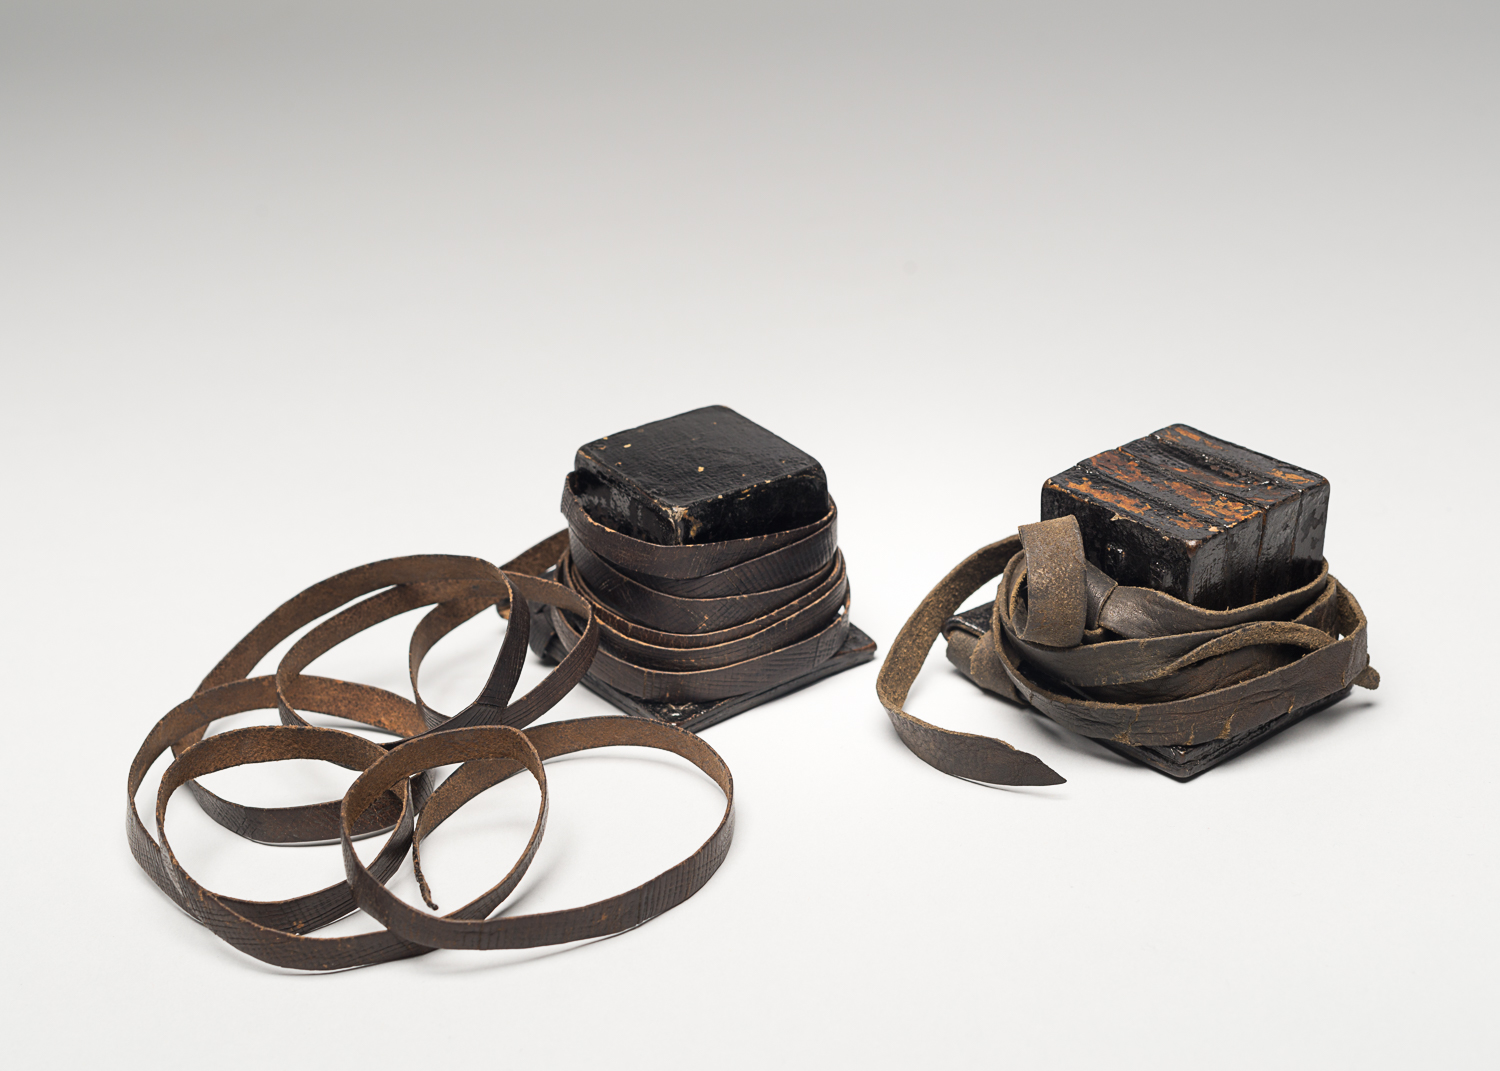 Anna, Simon's mother, gave him these tefillin before he departed with the Kindertransport.